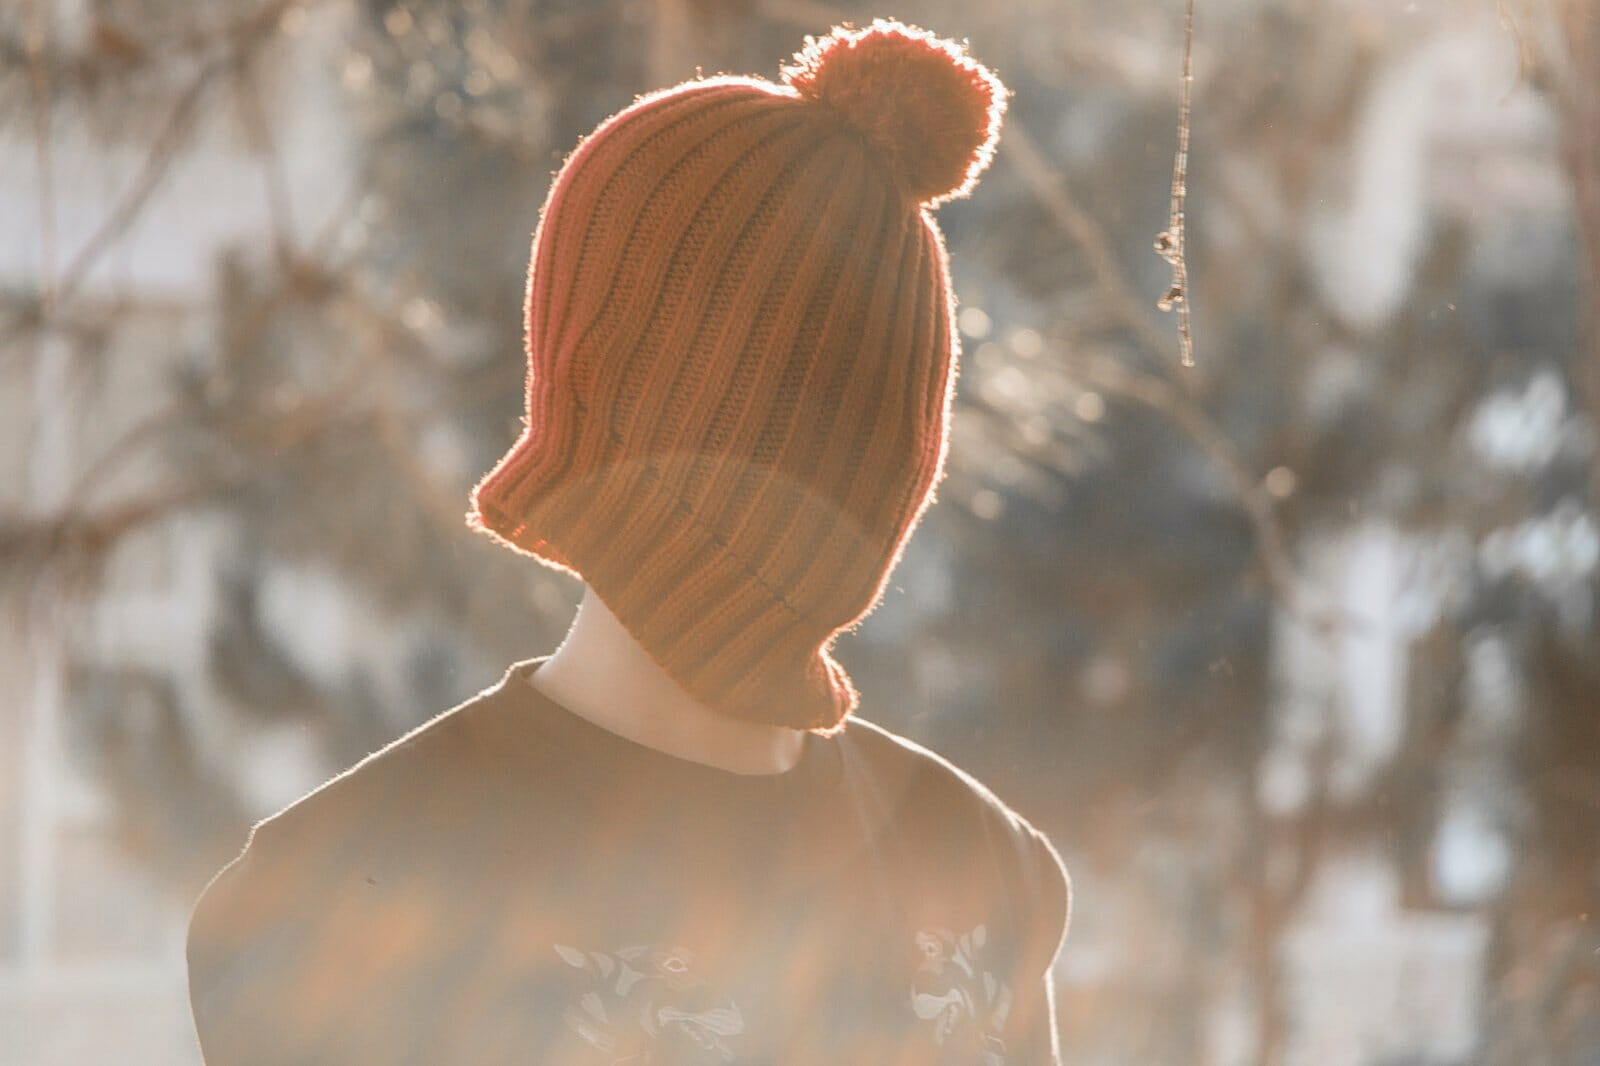 Funny travel stories - A person is wearing an orange stocking cap over their face and head